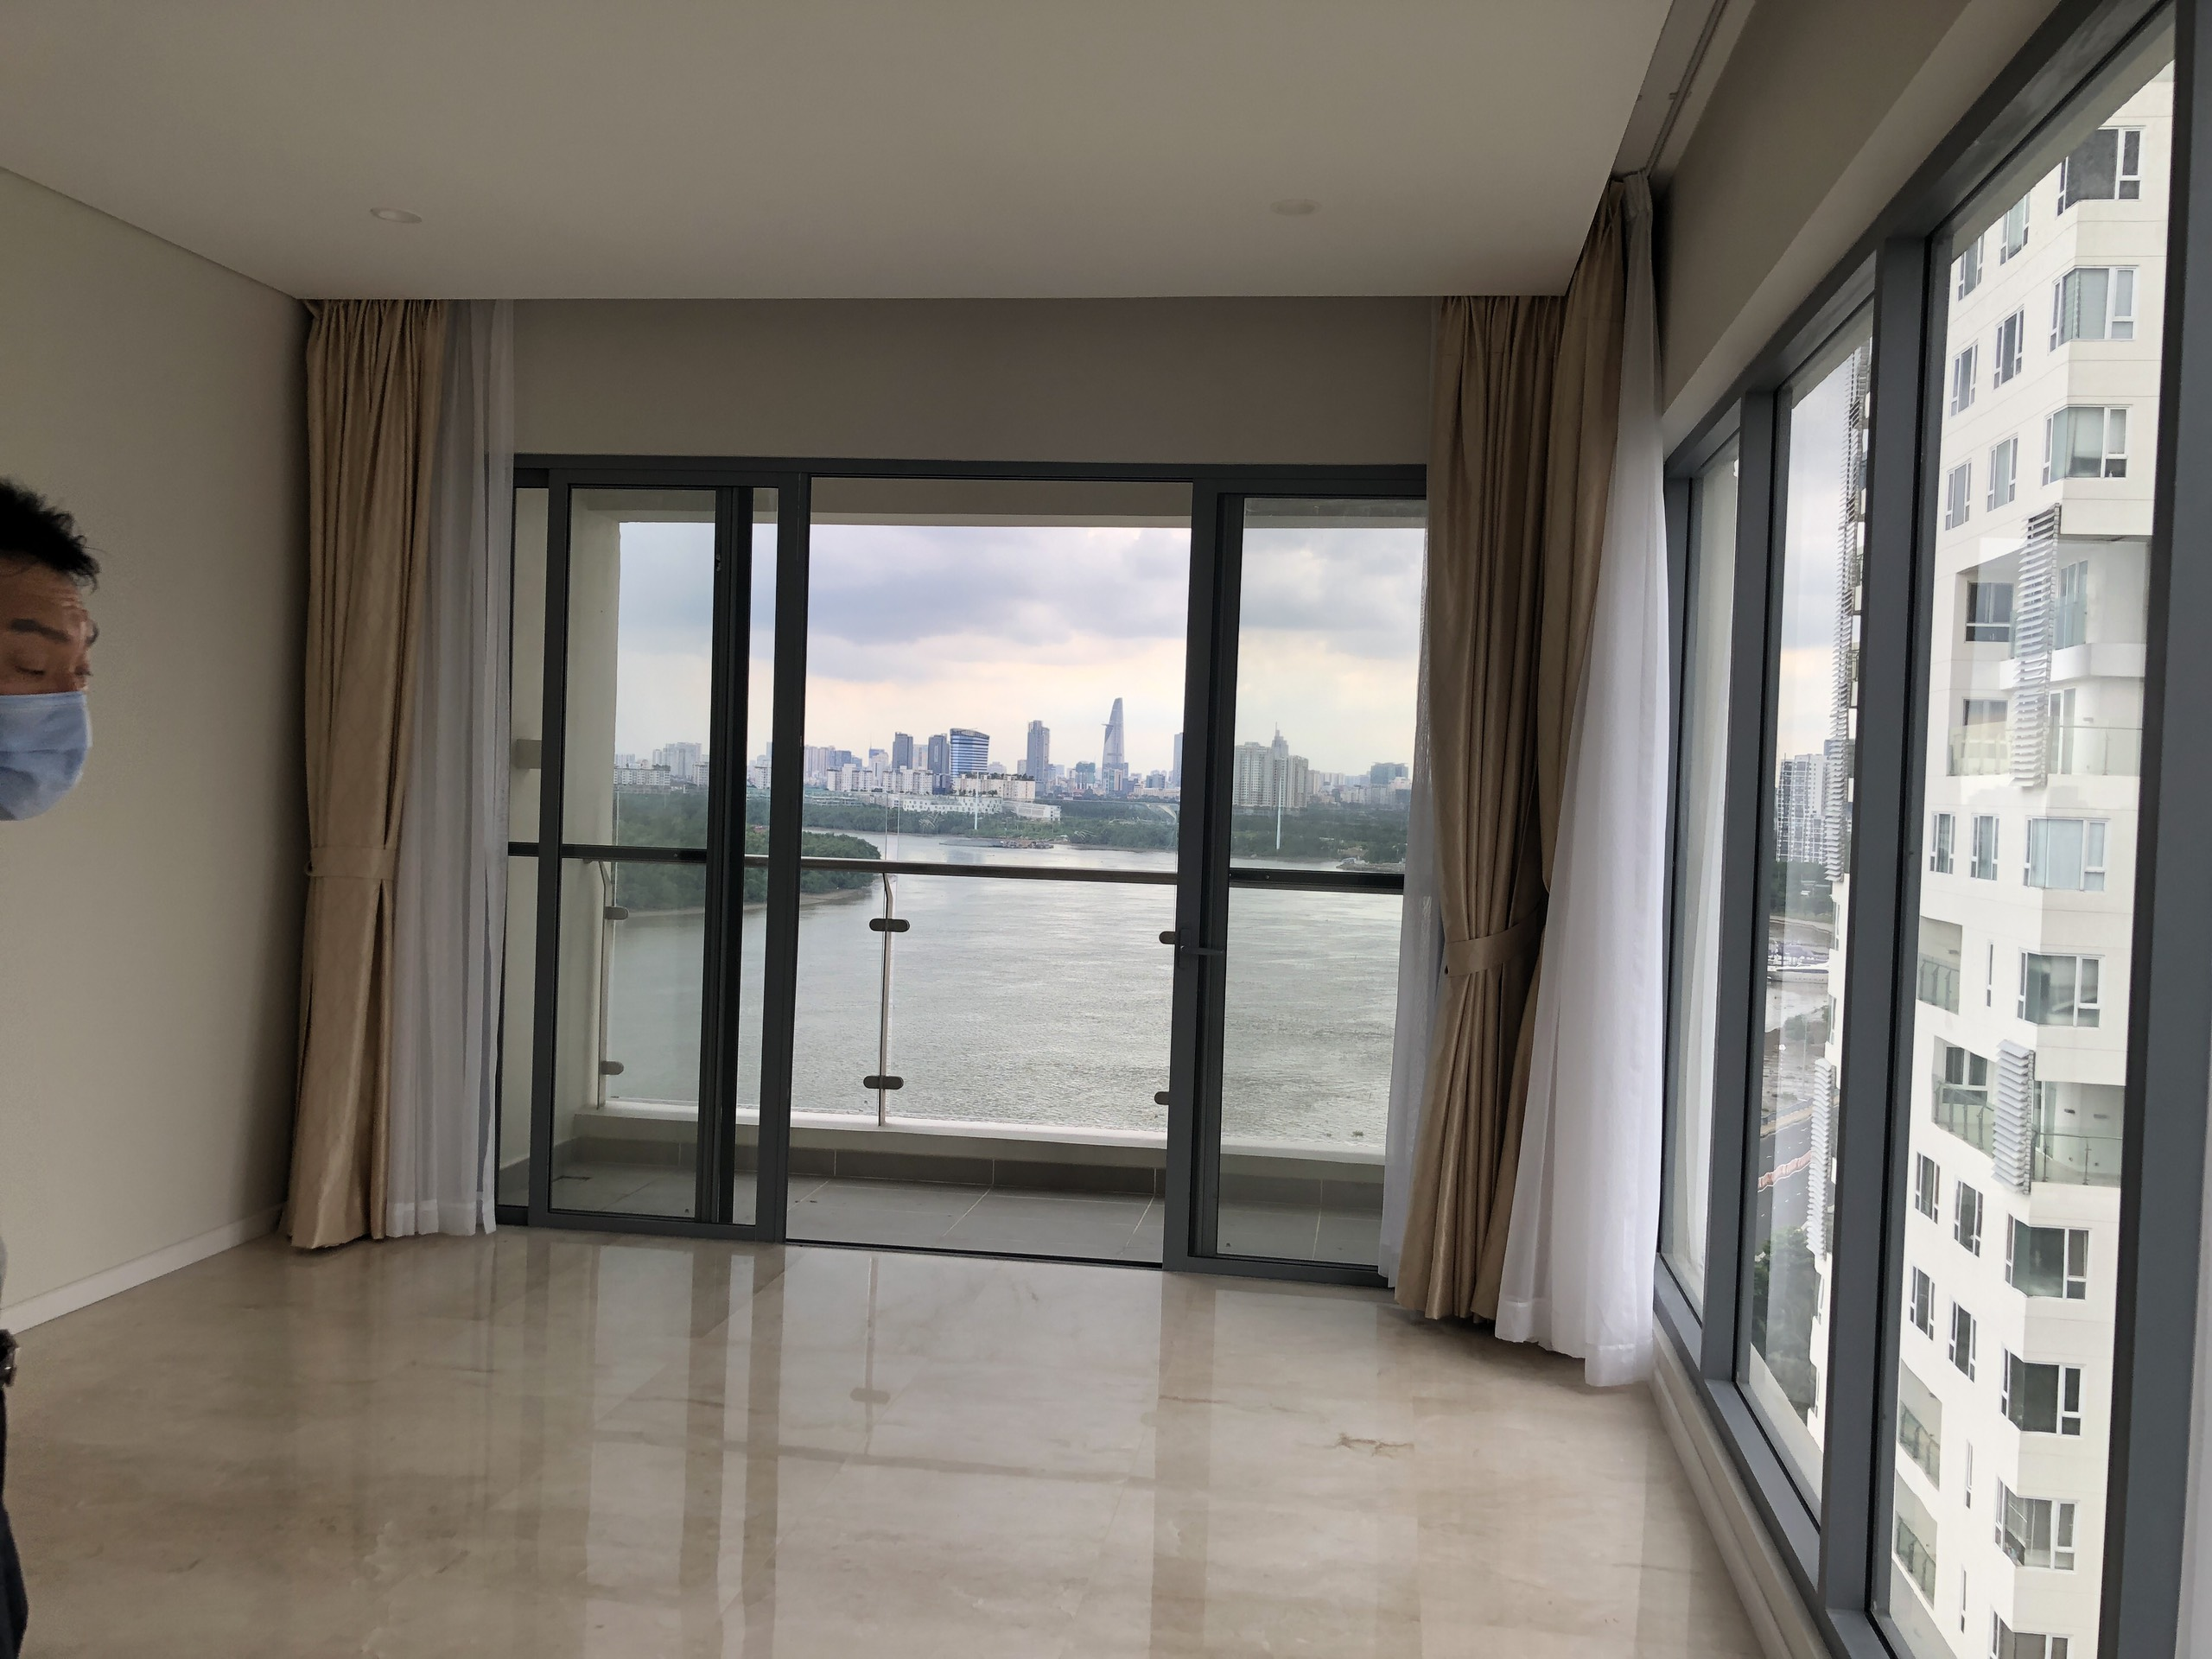 DI0694 - Diamond Island Apartment For Sale & Sale in Ho Chi Minh City - 3 bedroom